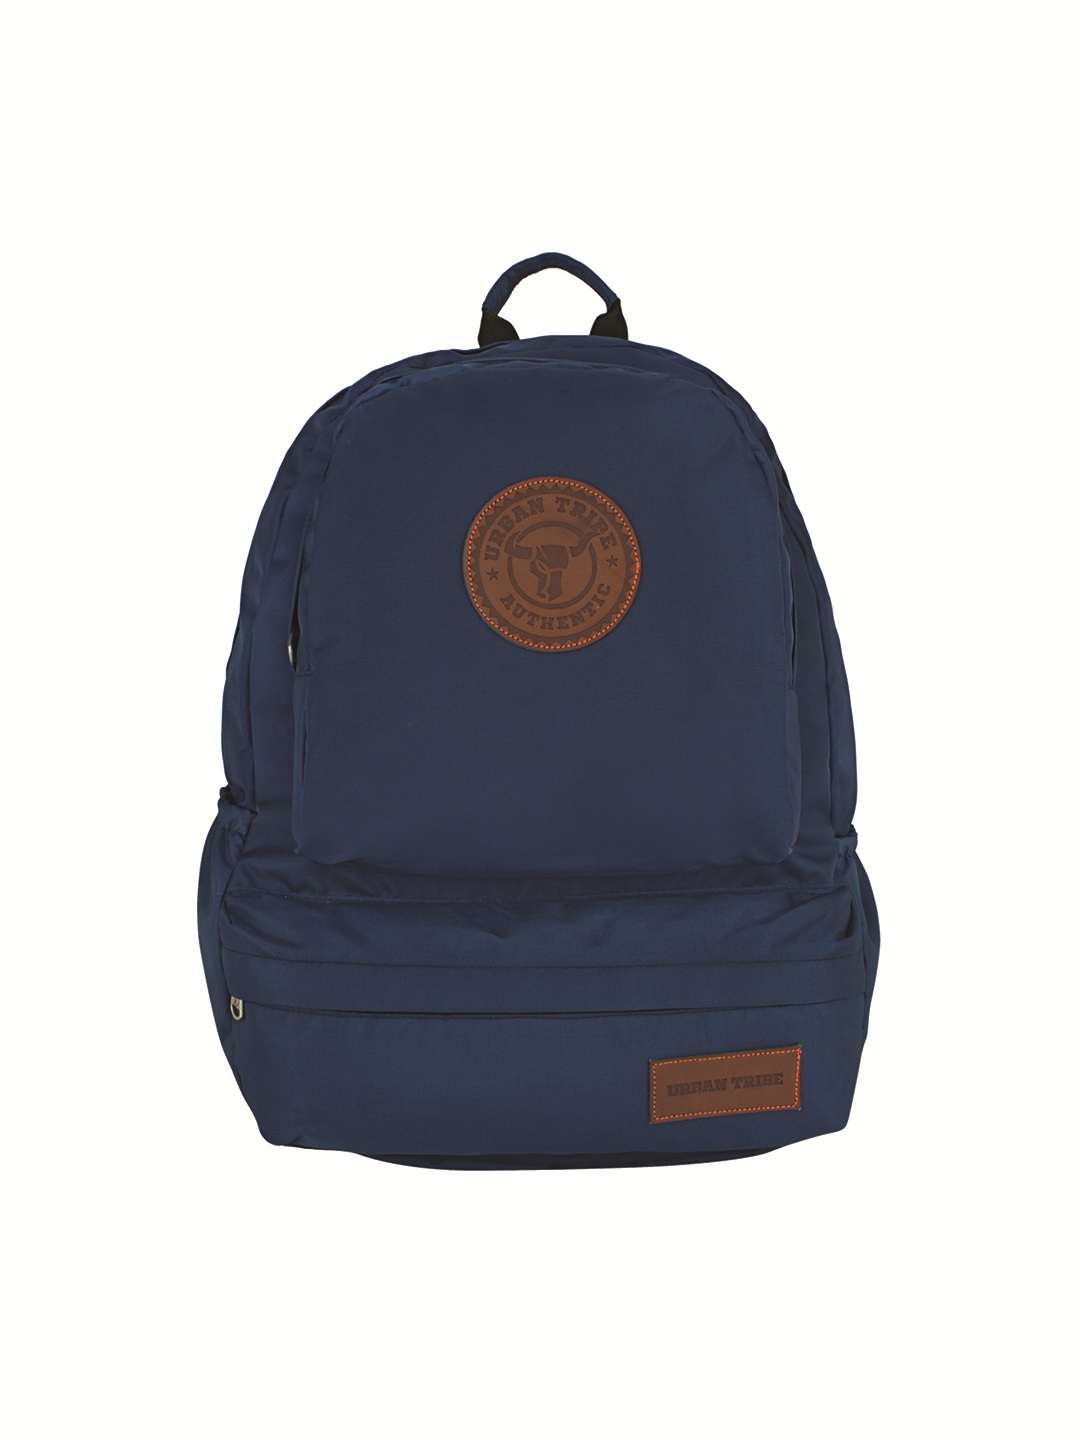 URBAN TRIBE Unisex Navy Backpack